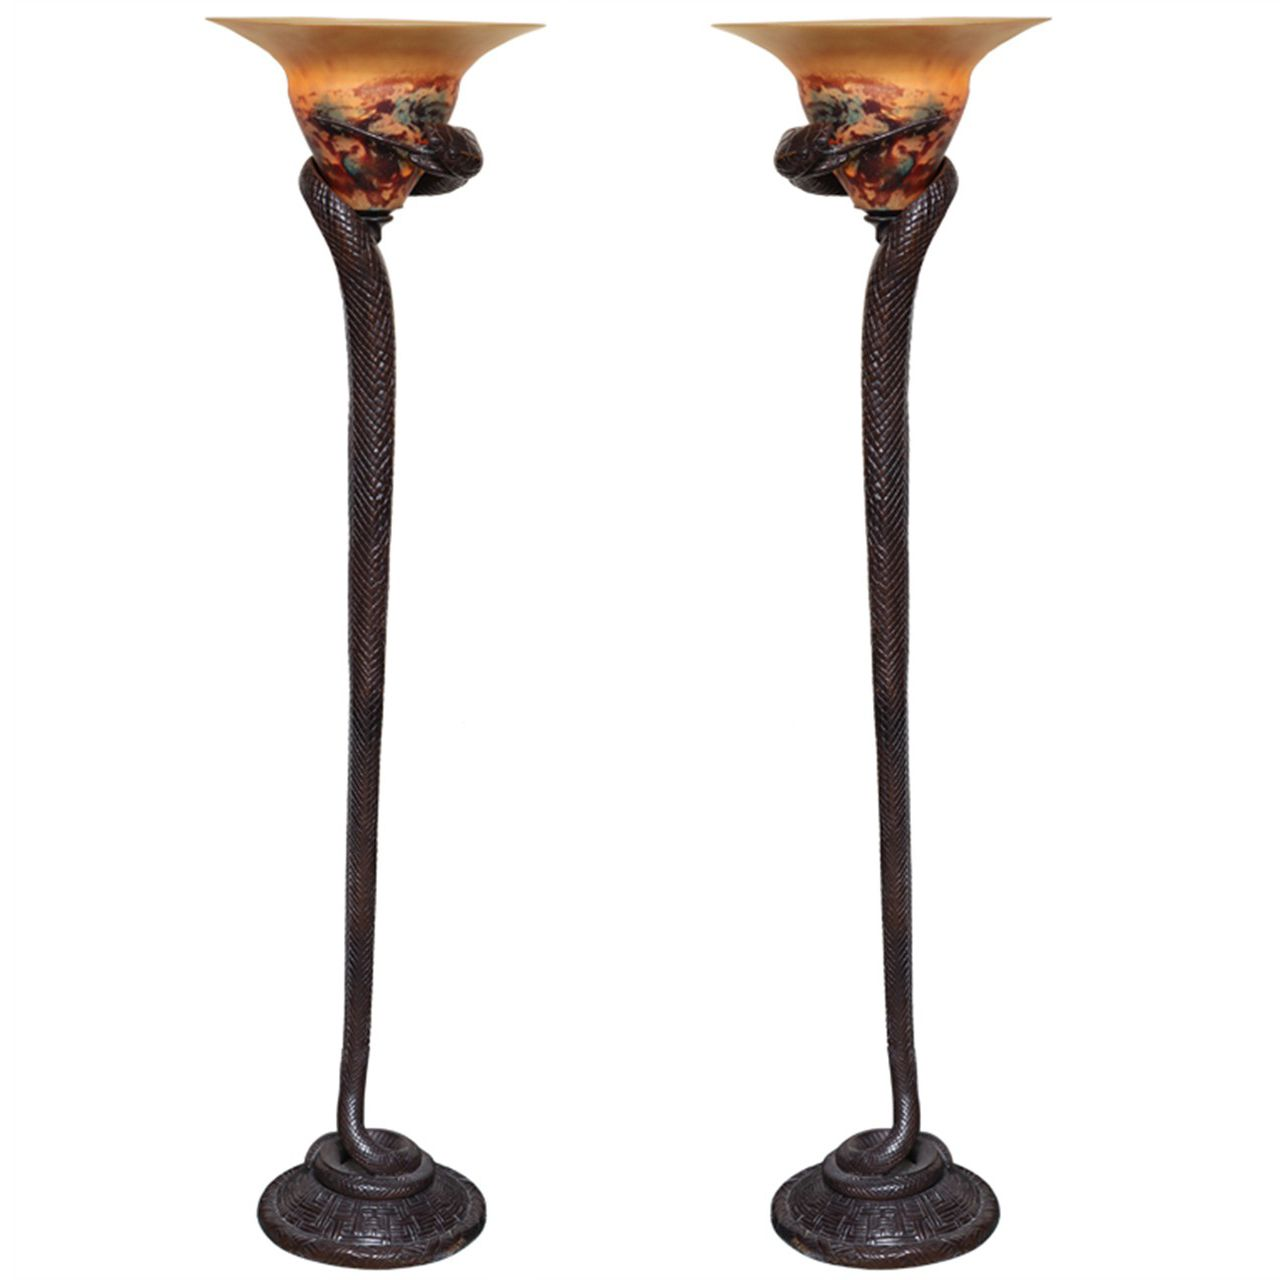 Unique Floor Lamps For Sale Pair Of Art Deco Style Bronze And Art Glass Snake Form